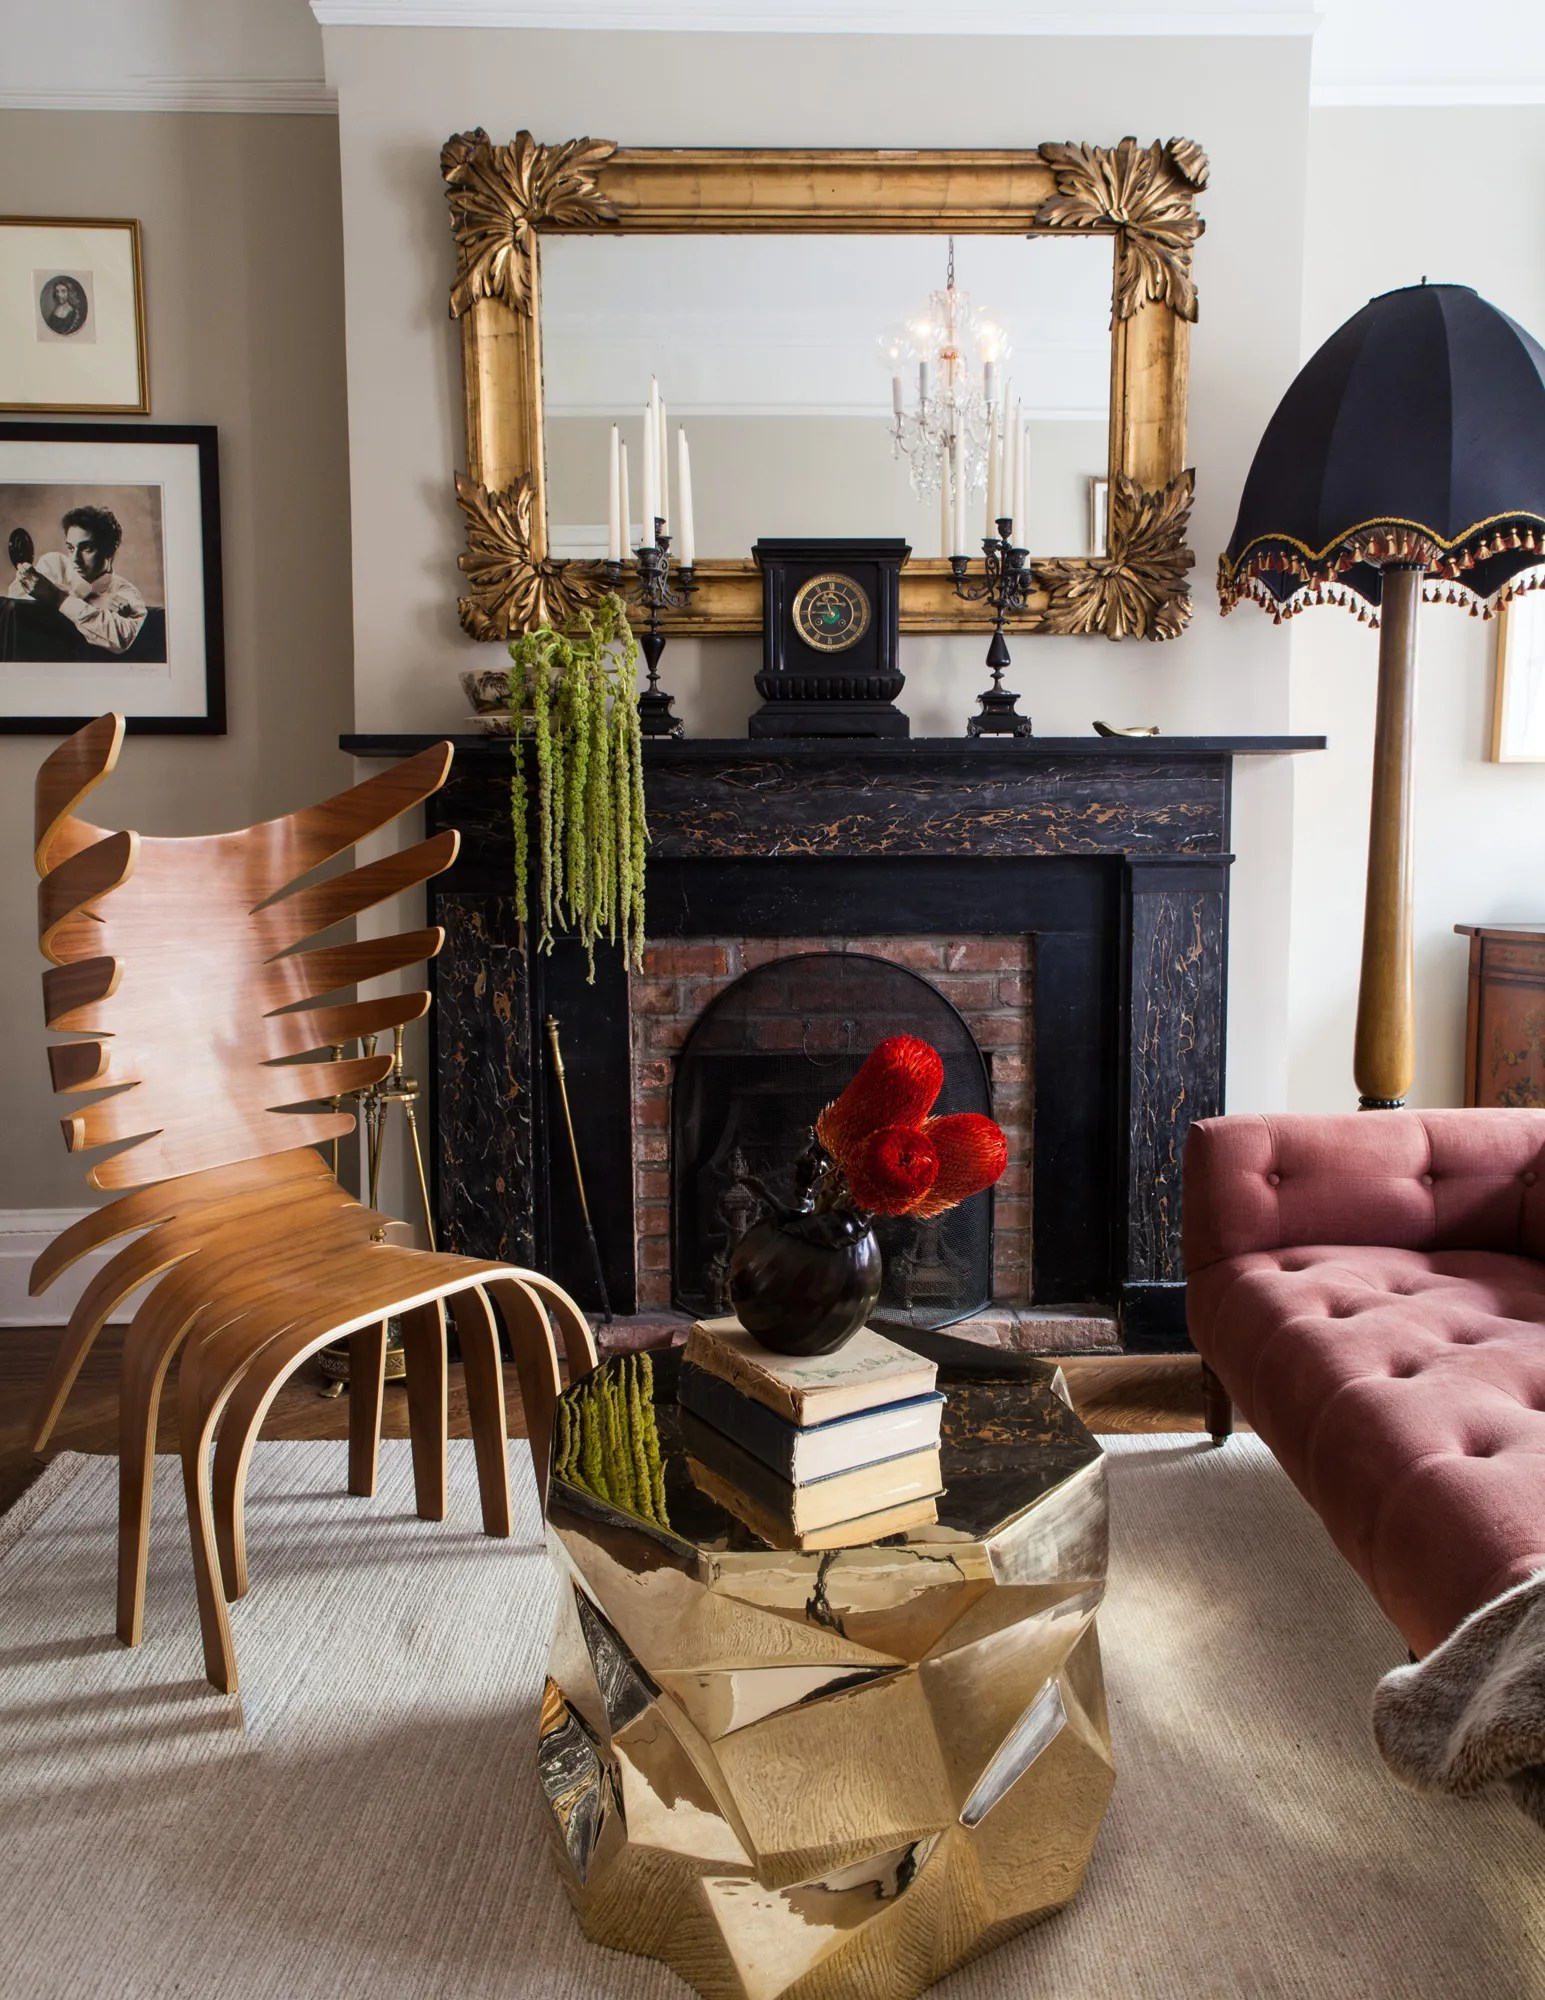 chairs for heavy guys crushed velvet chair covers ebay interior designer jamie drake joins forces with caleb anderson under + photos ...